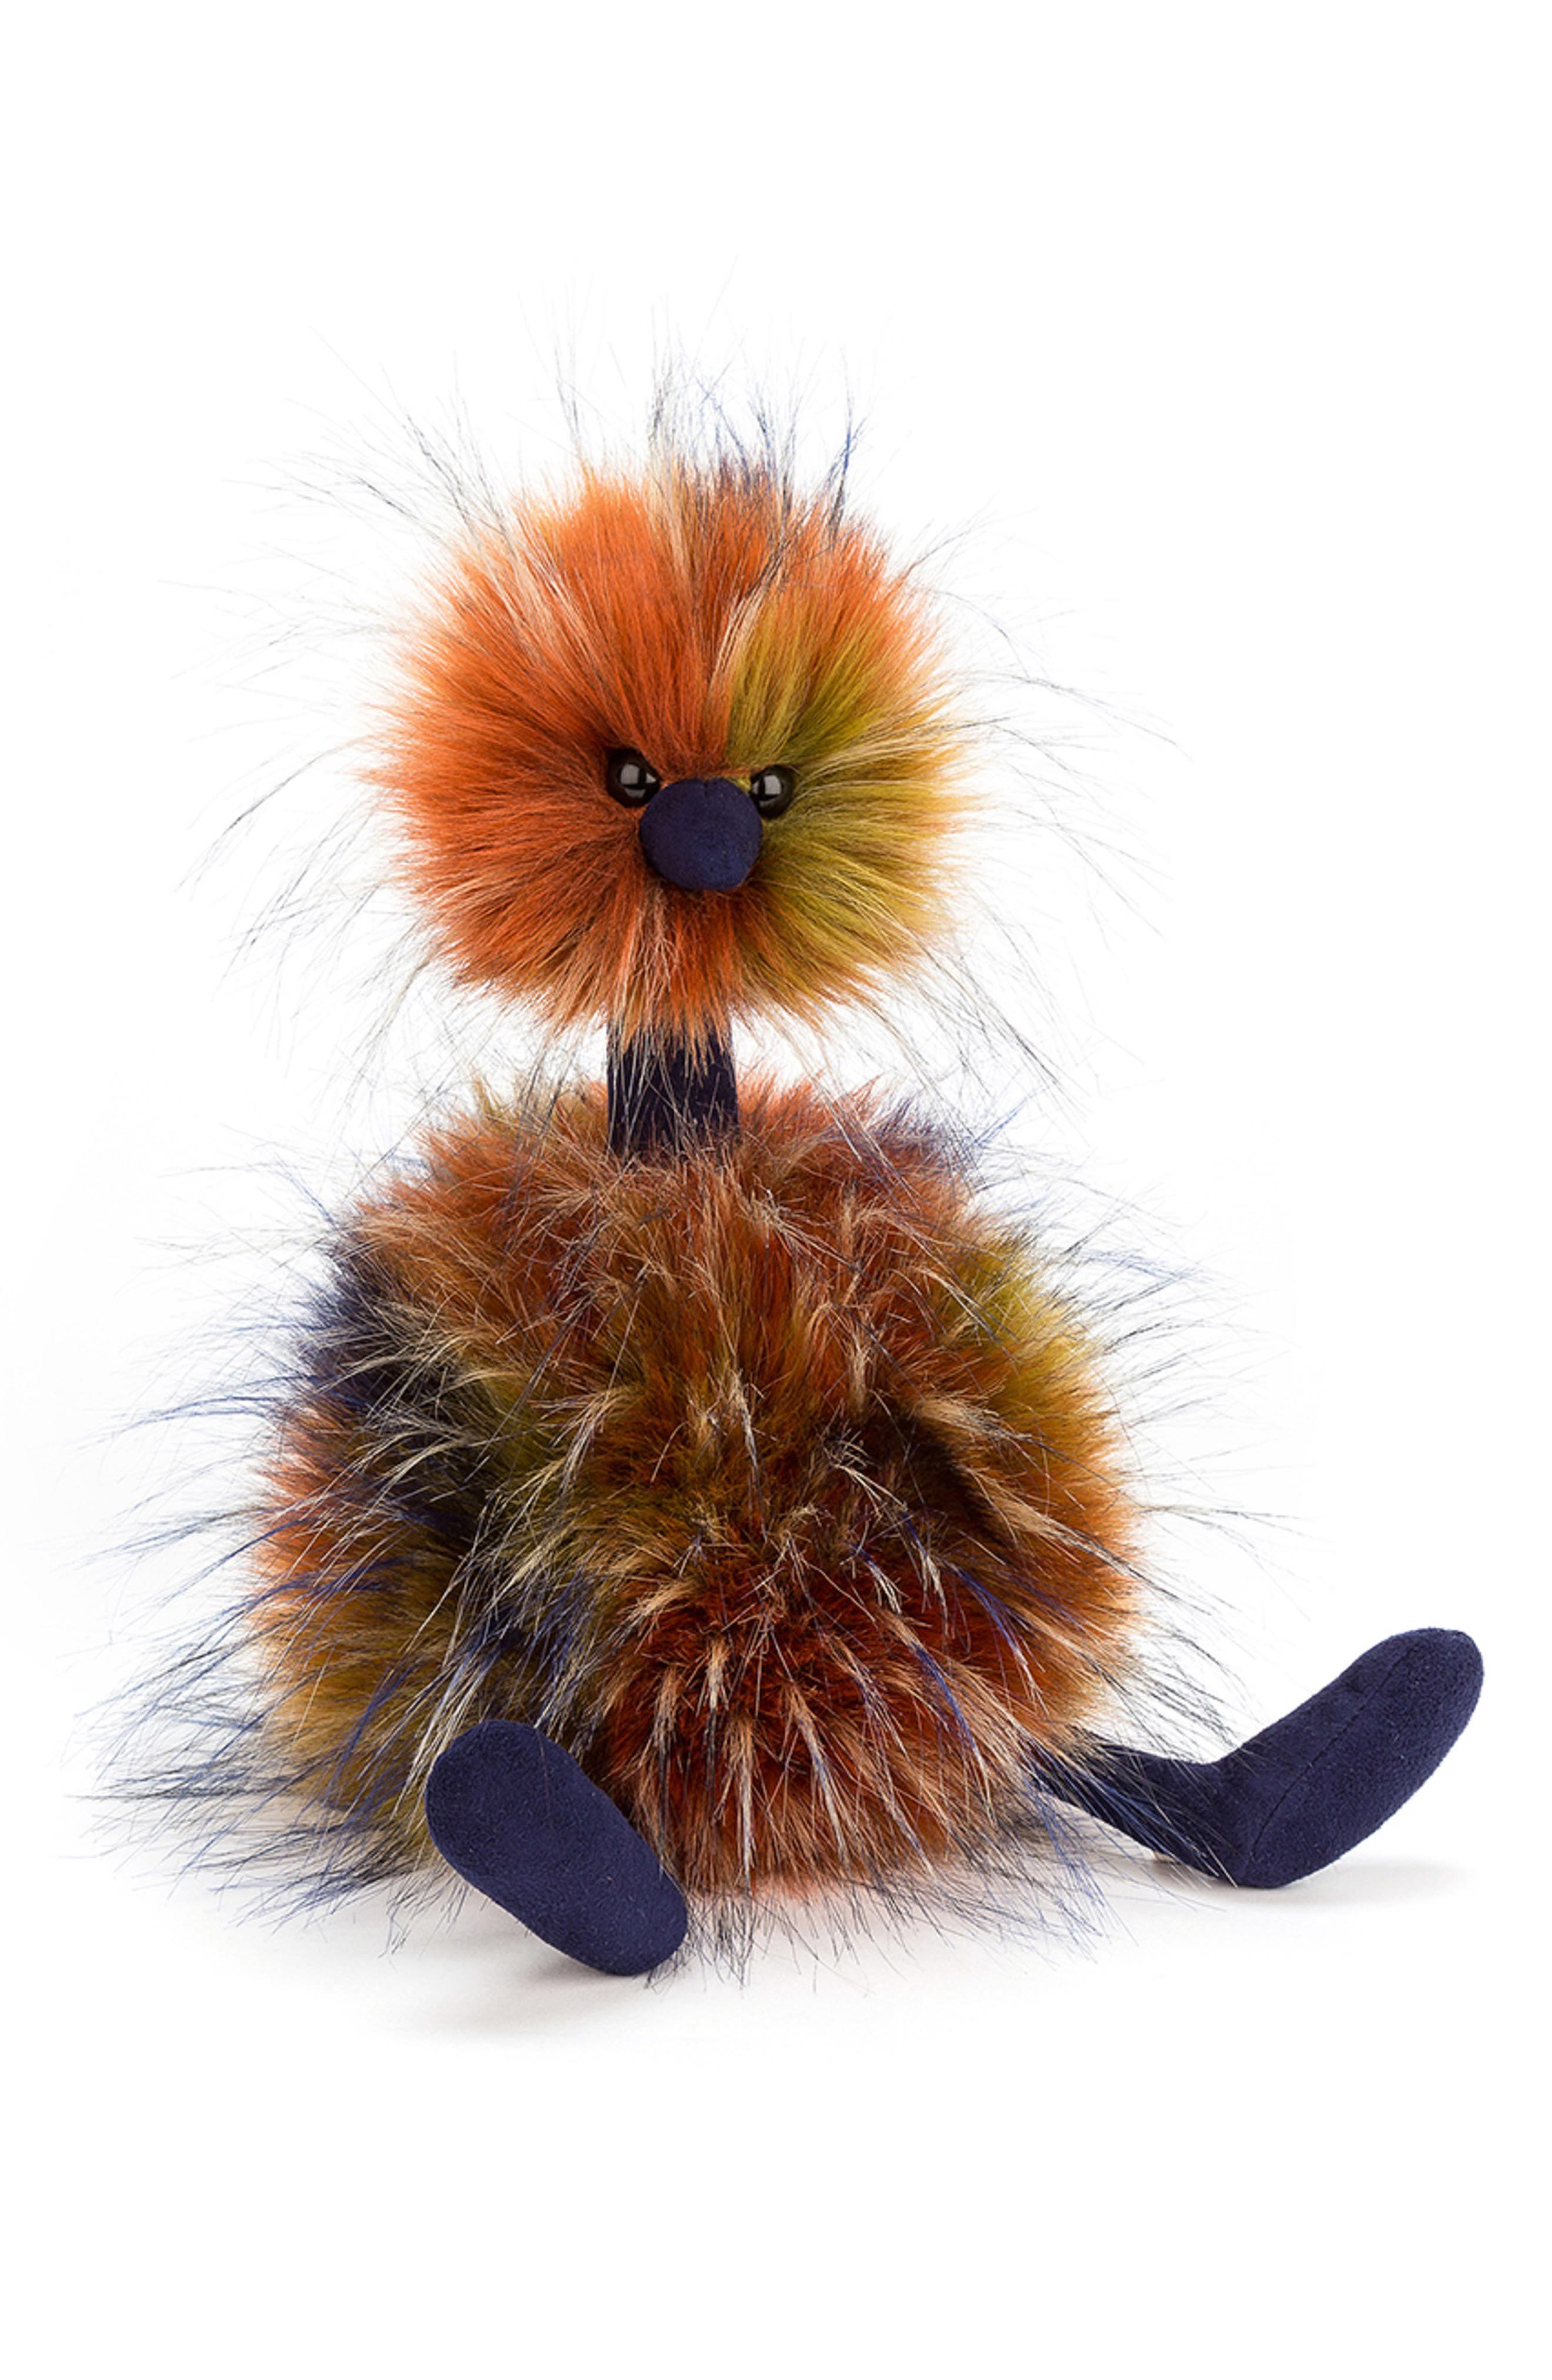 Large Spiced Pom Pom Stuffed Animal,                             Main thumbnail 1, color,                             960